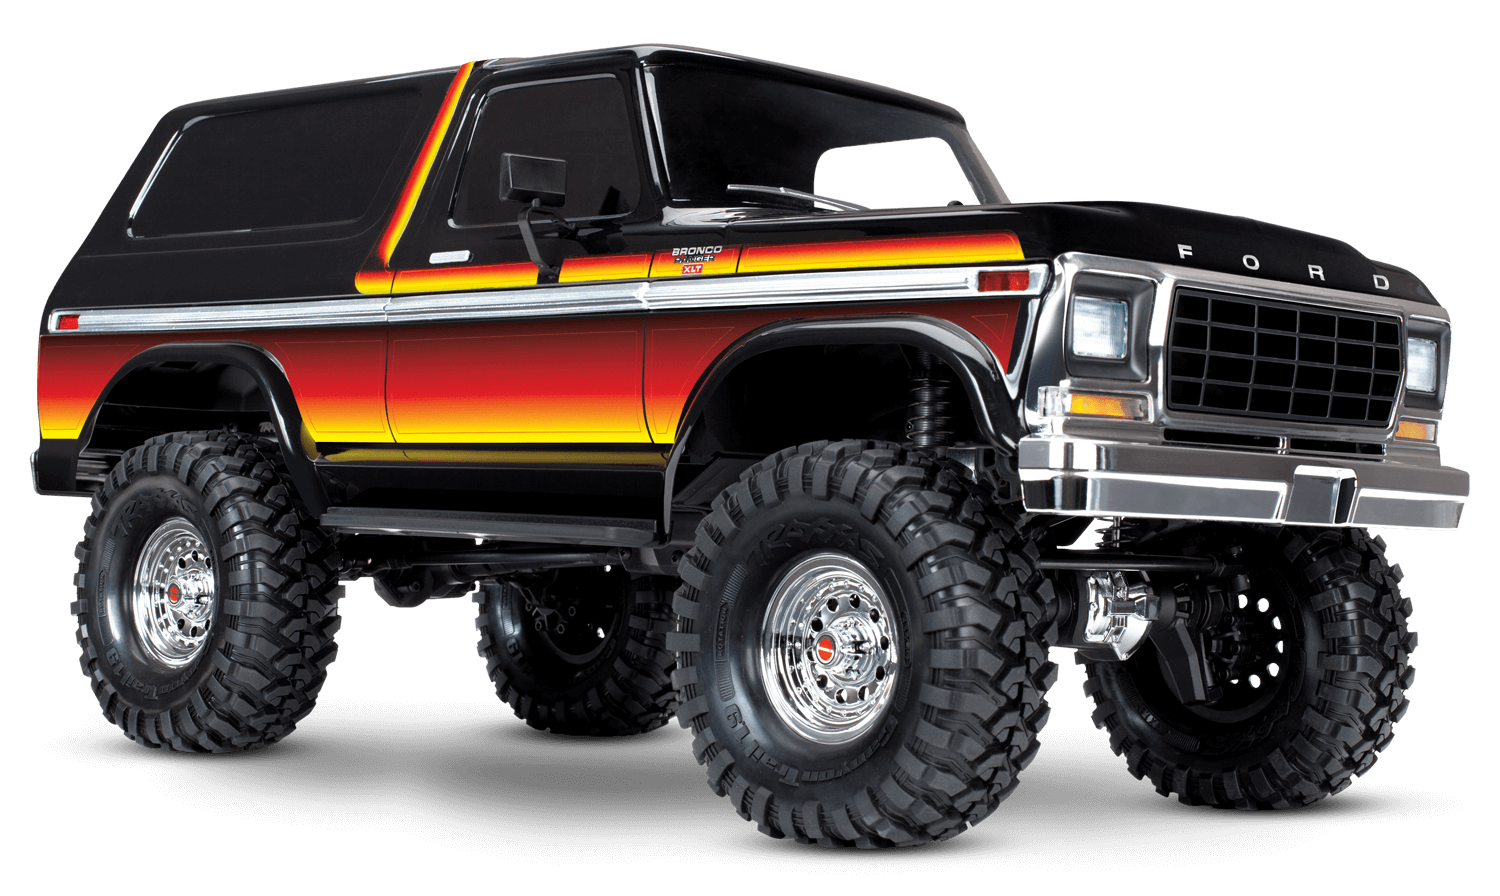 Traxxas TRX-4 Ford Bronco Trail Truck Available Now! - RC ...